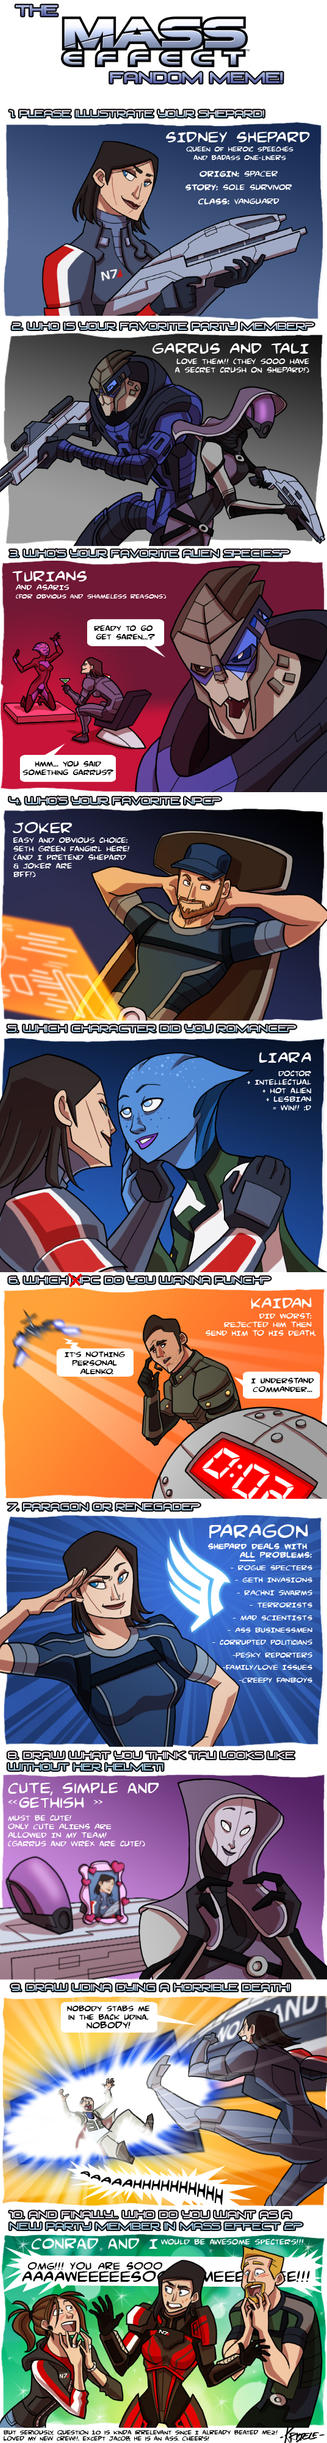 Kristele's Mass Effect Meme by Kristele